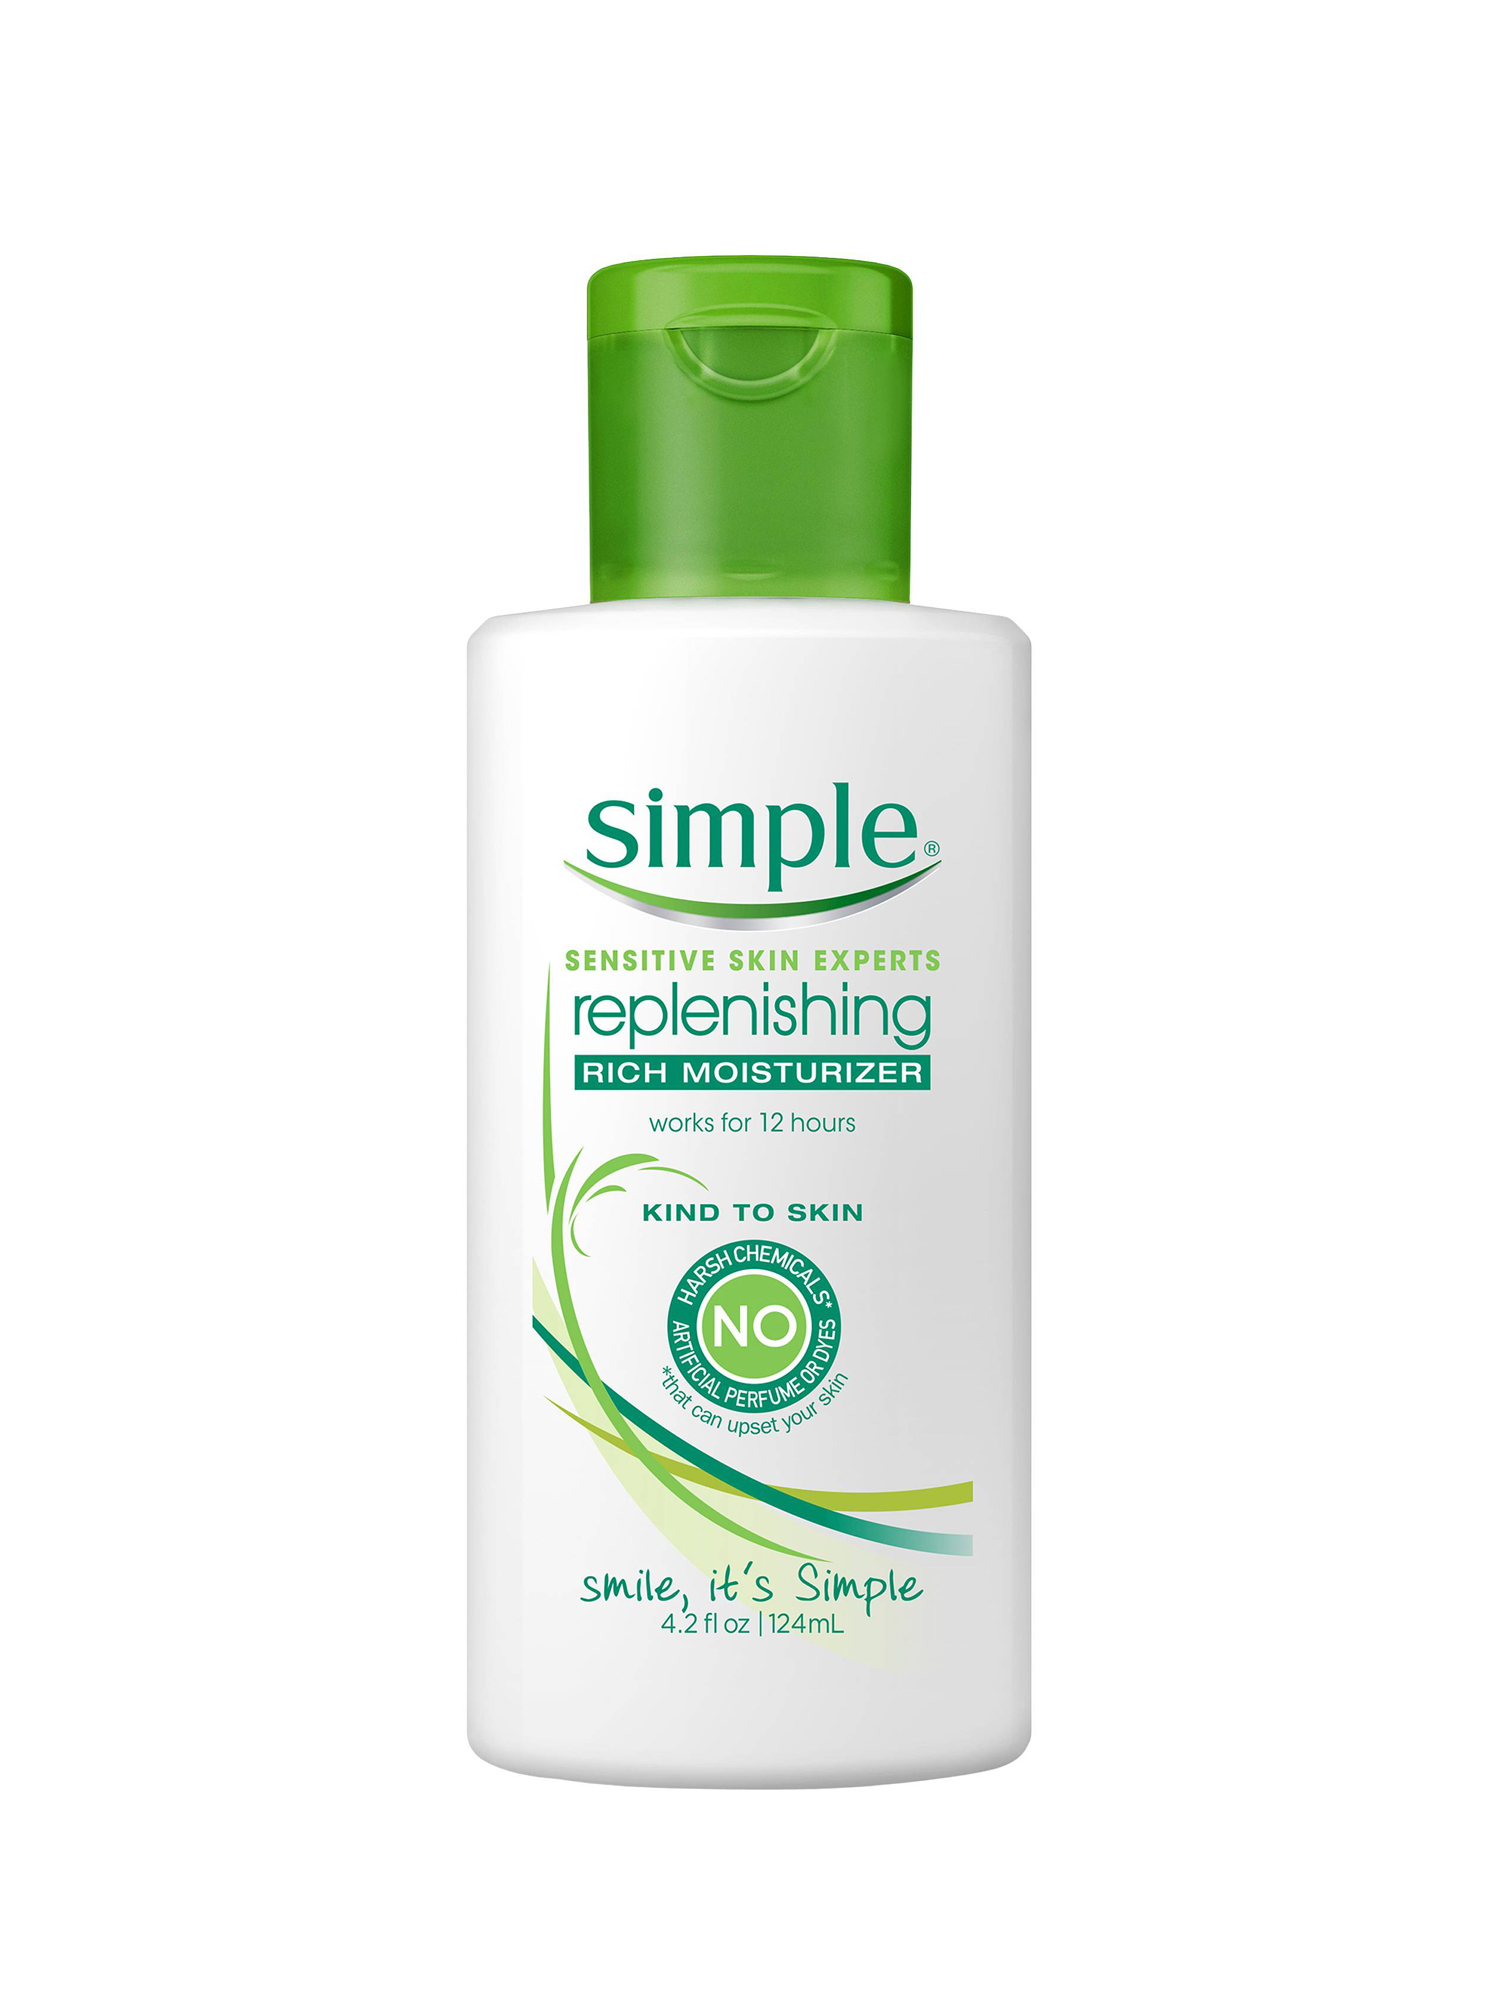 Are right, best products for dry facial skin